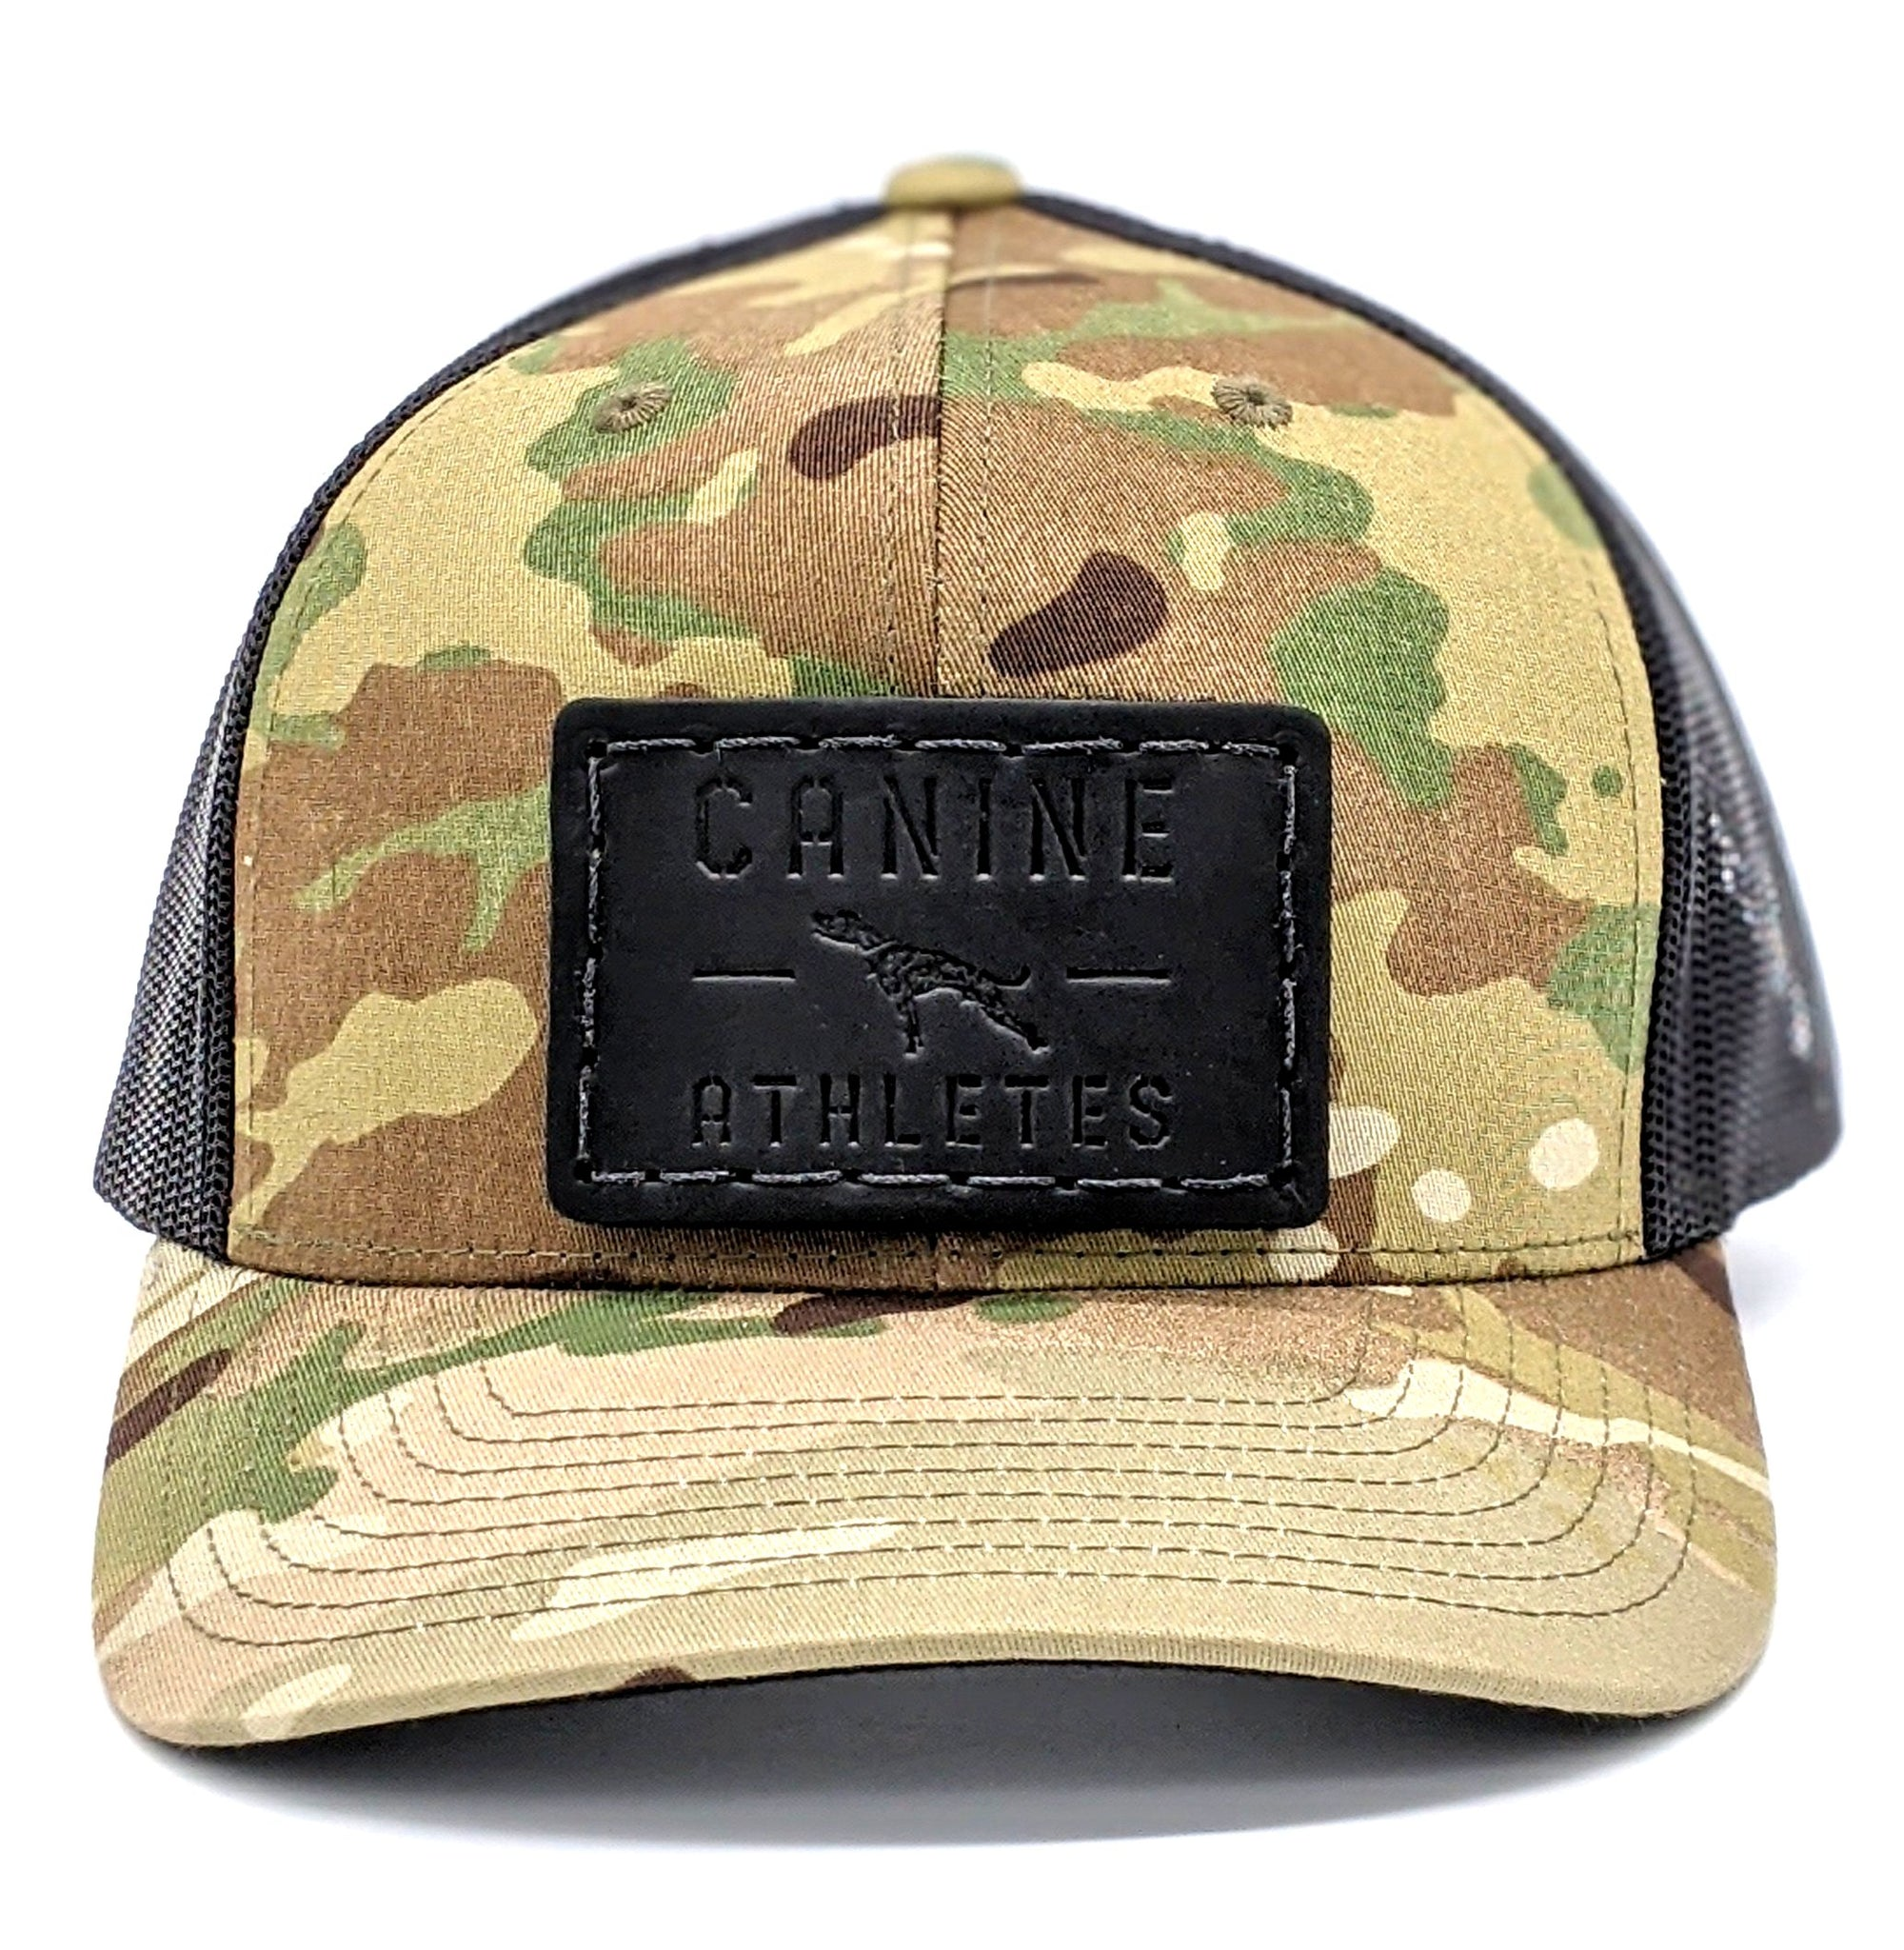 Canine Athletes Leather Patch Hat